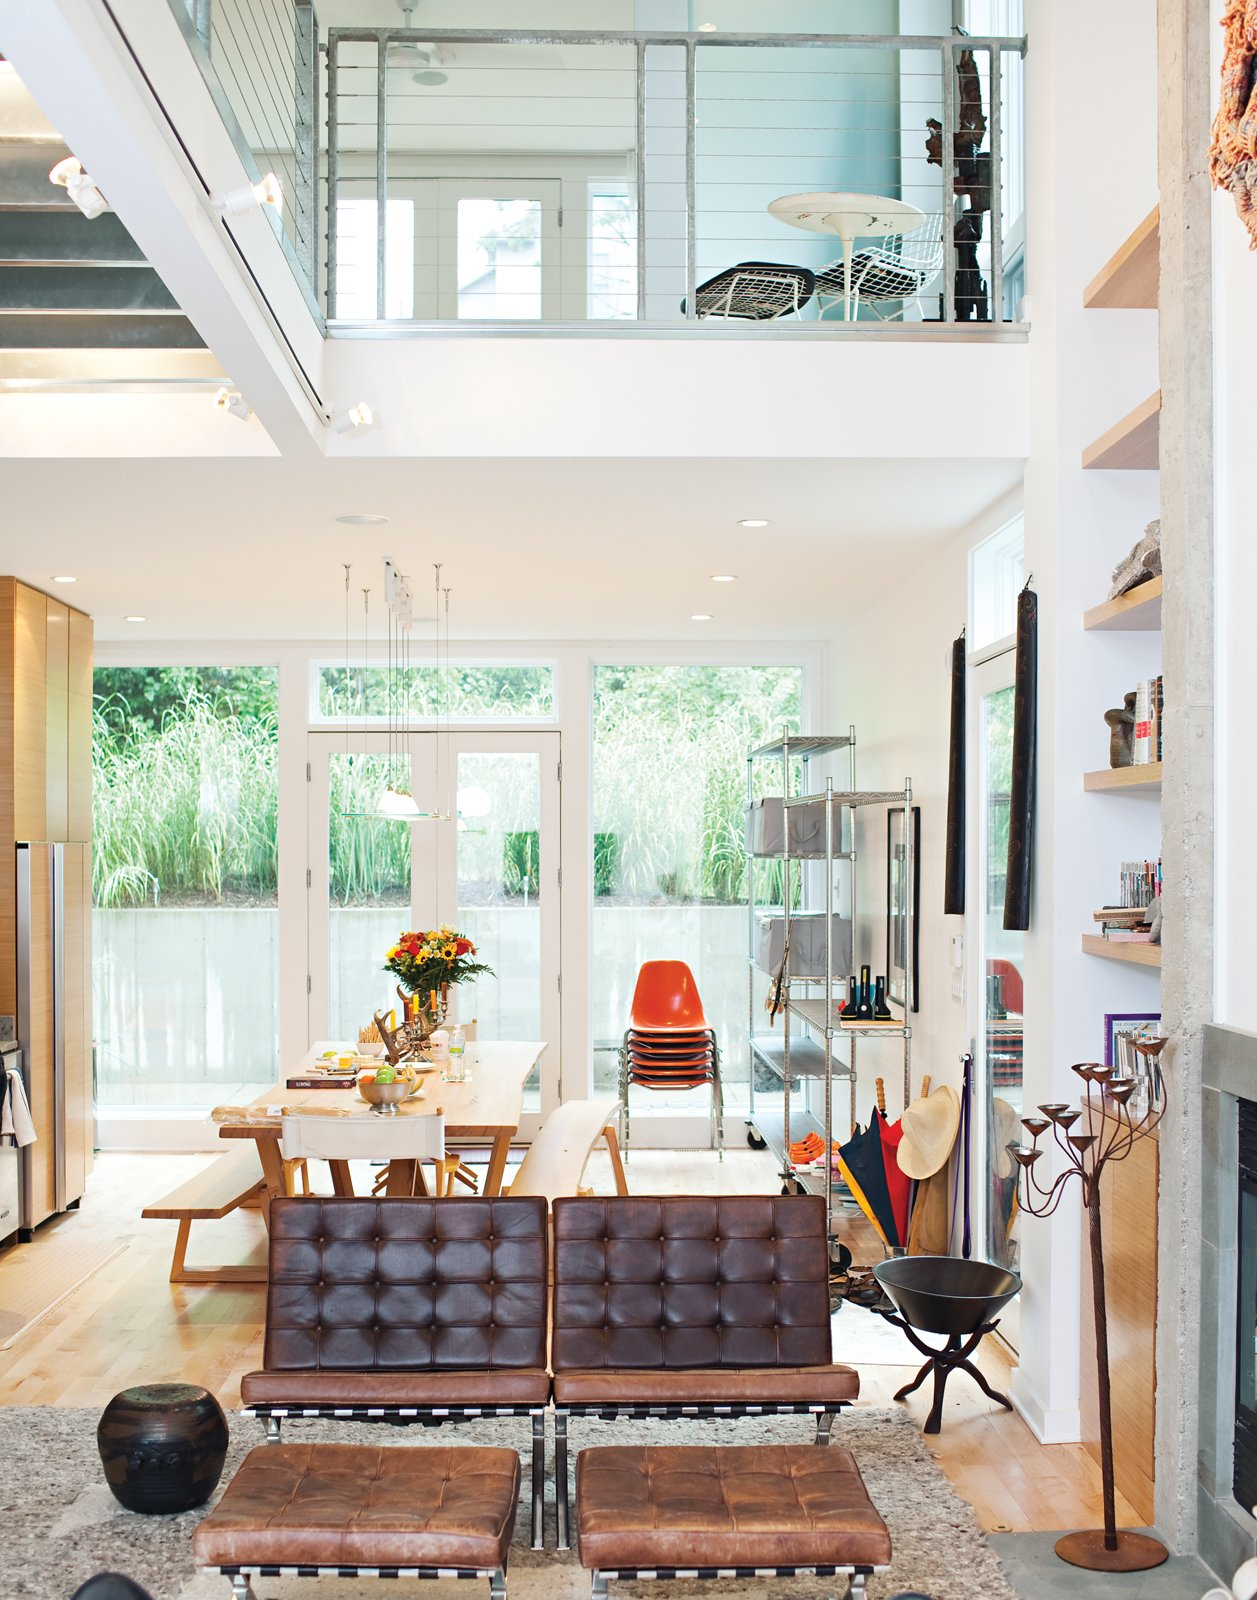 To create a sense of luxury on a budget, the architect ran a thin concrete border along either side of the fireplace flue and flanked it with floor-to-ceiling bookshelves. The second story has two lofts joined by a steel bridge. Tagged: Living Room, Light Hardwood Floor, Rug Floor, Standard Layout Fireplace, Bench, Chair, End Tables, Ottomans, Shelves, Storage, and Table.  Photo 2 of 25 in Come Sail Away